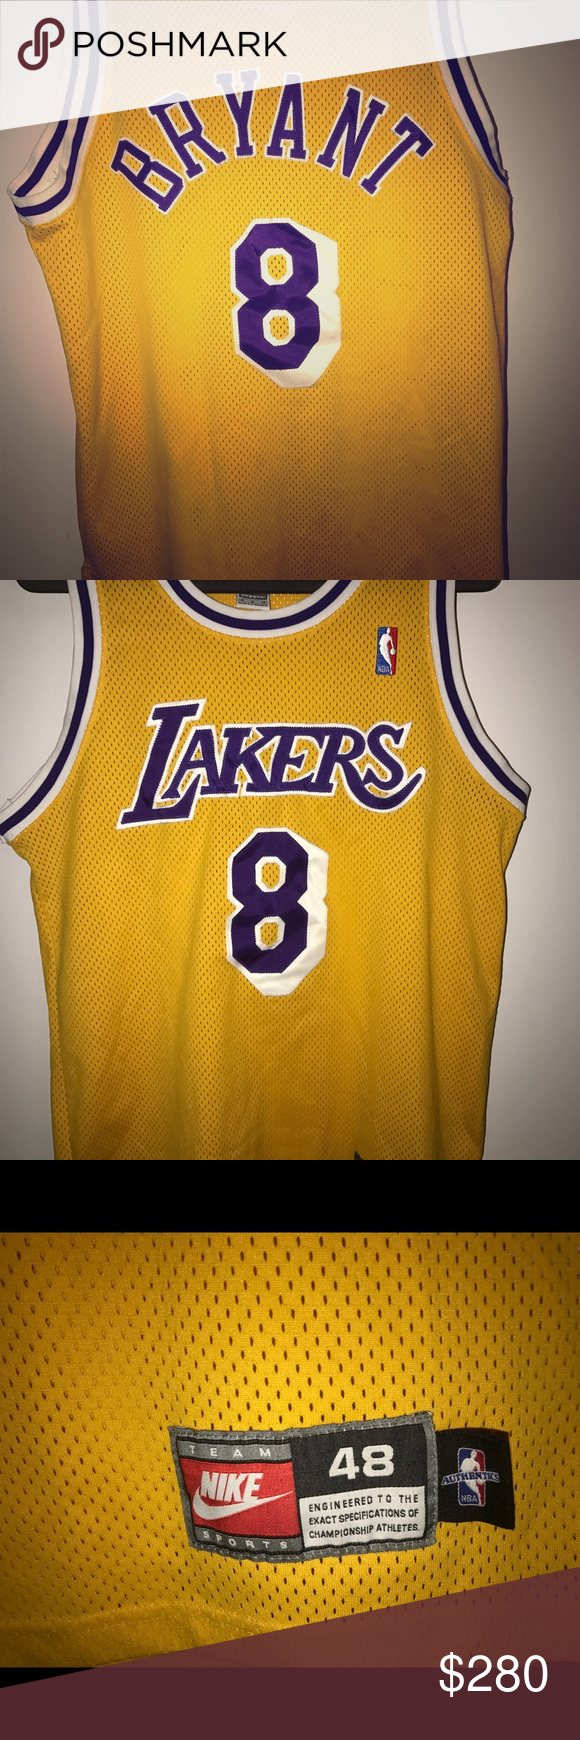 meet 34bdd a075b Nike Authentic NBA Throwback Lakers jersey Nike Authentic LA ...